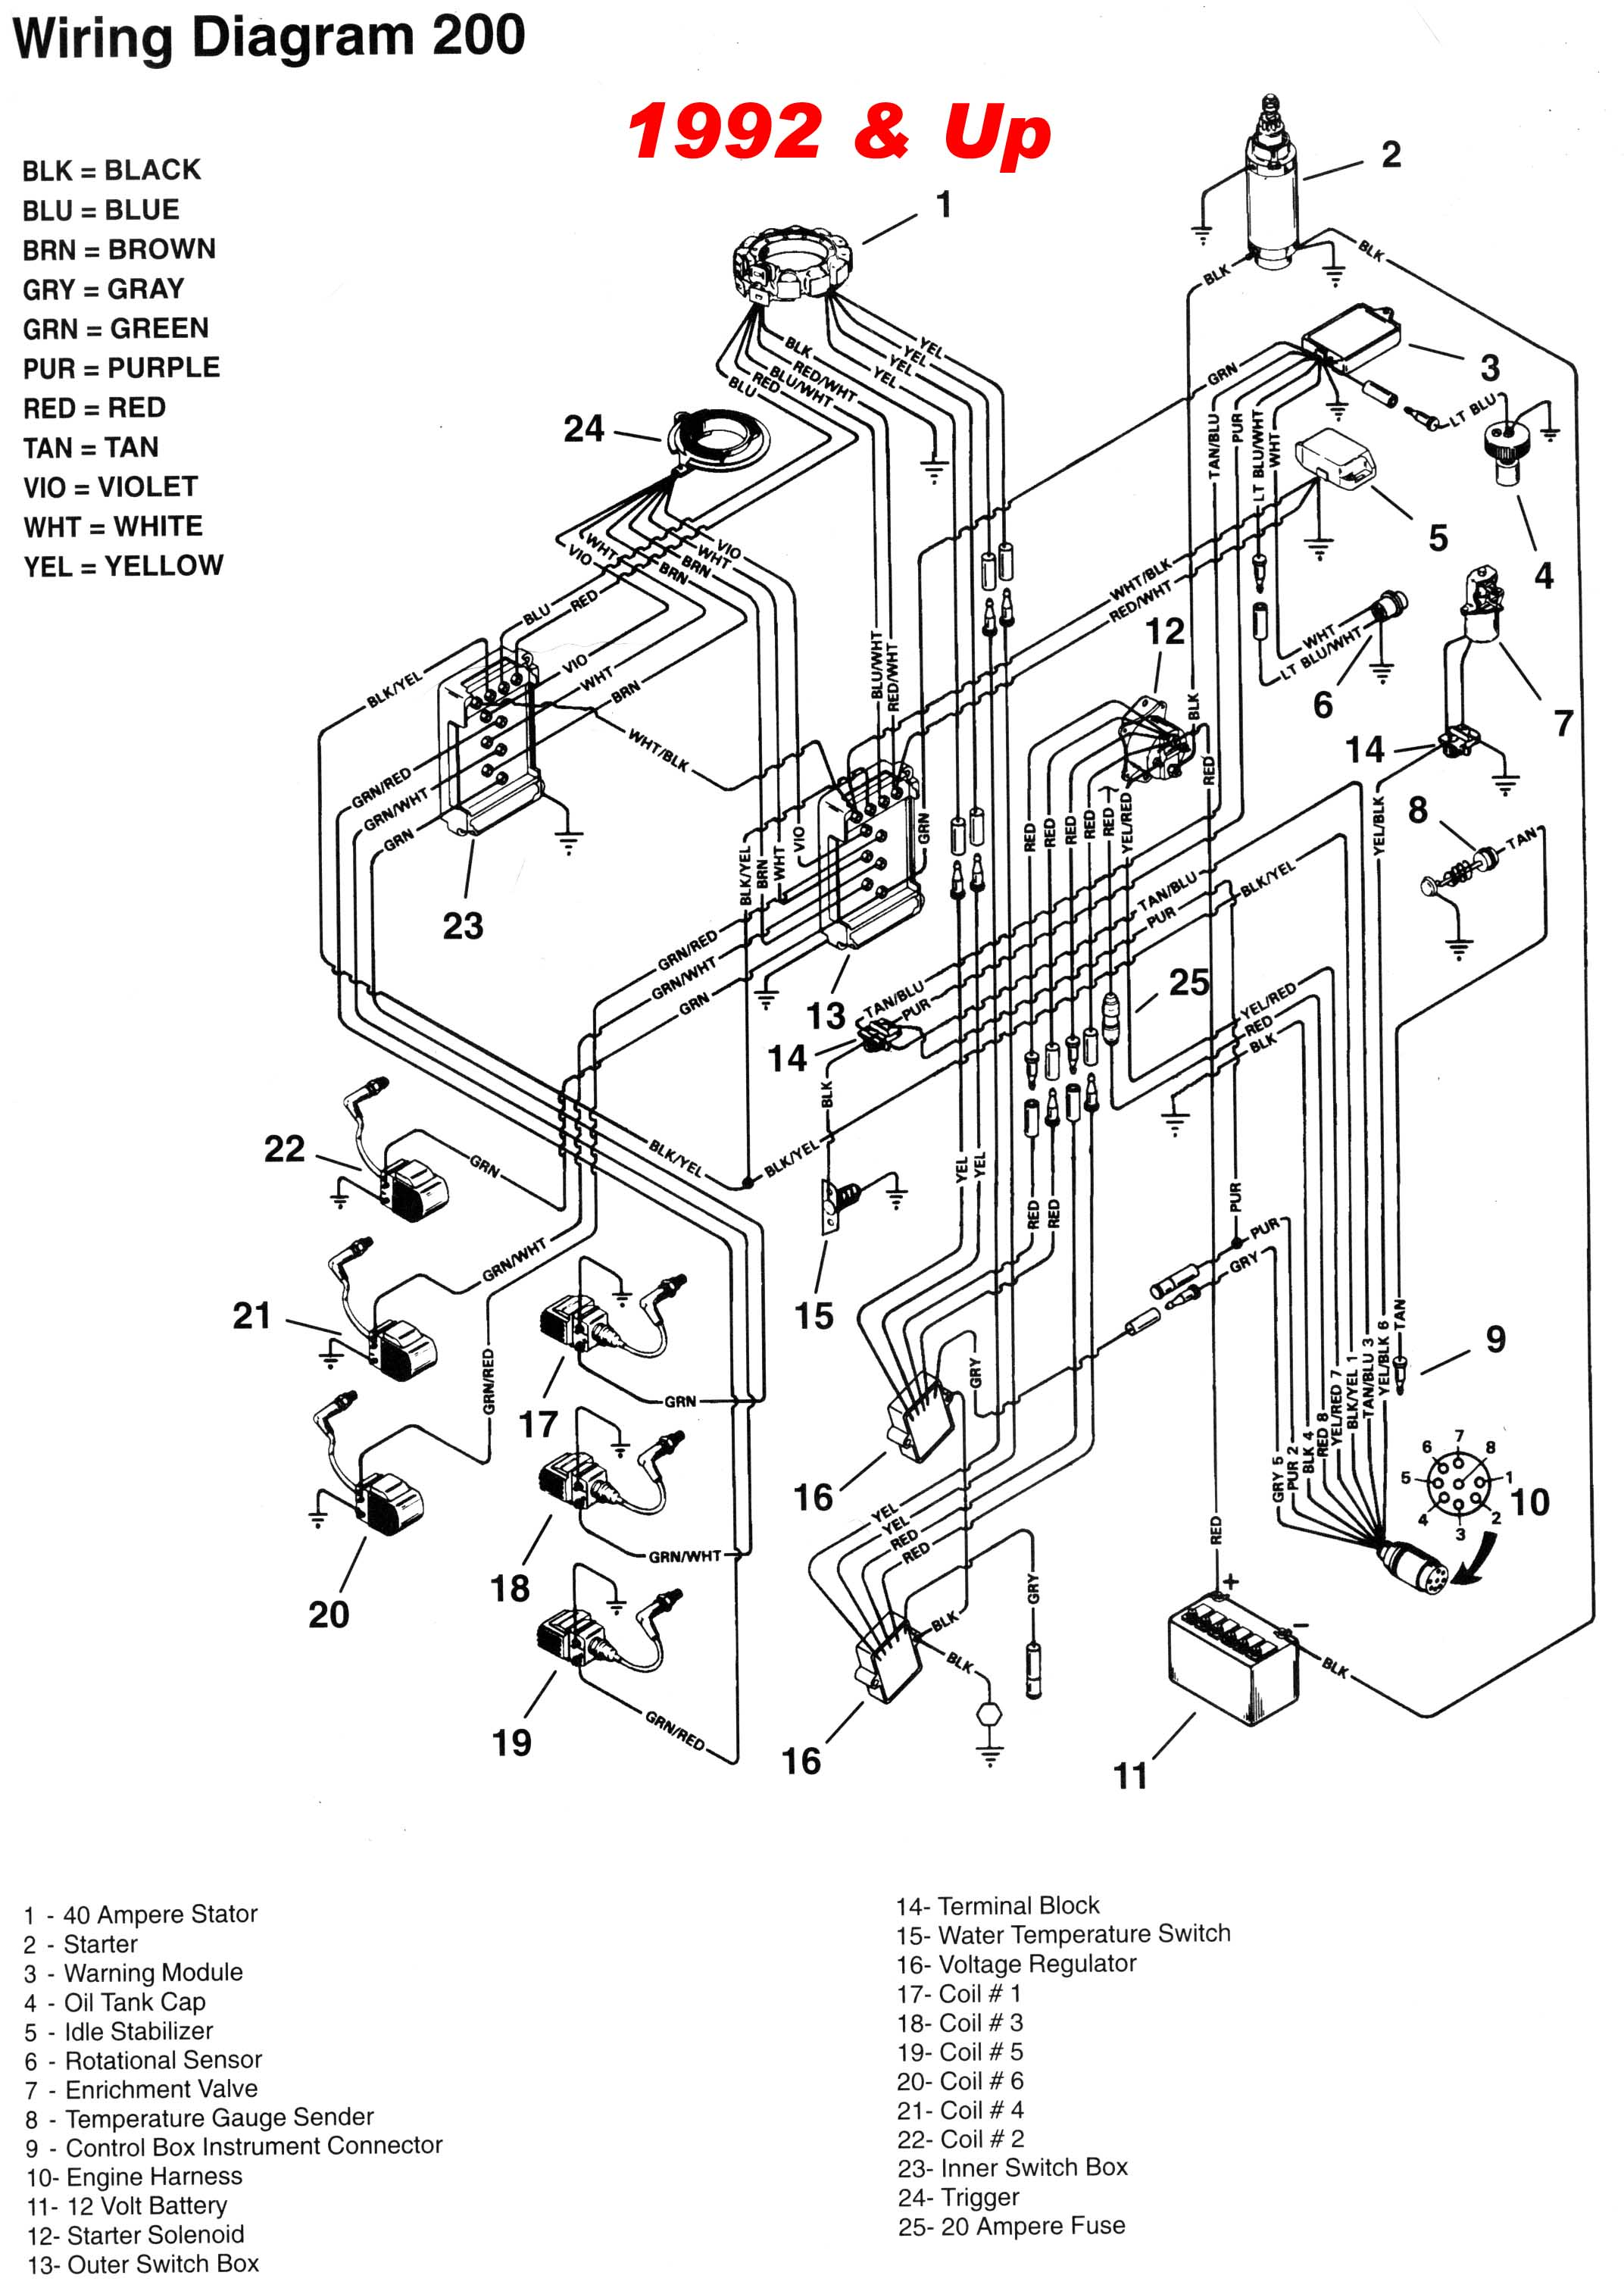 mercury_92up_200_wiring mercury outboard 2 5 and 3 0l v6 and gearcase faq mercury 14 pin wiring harness diagram at metegol.co